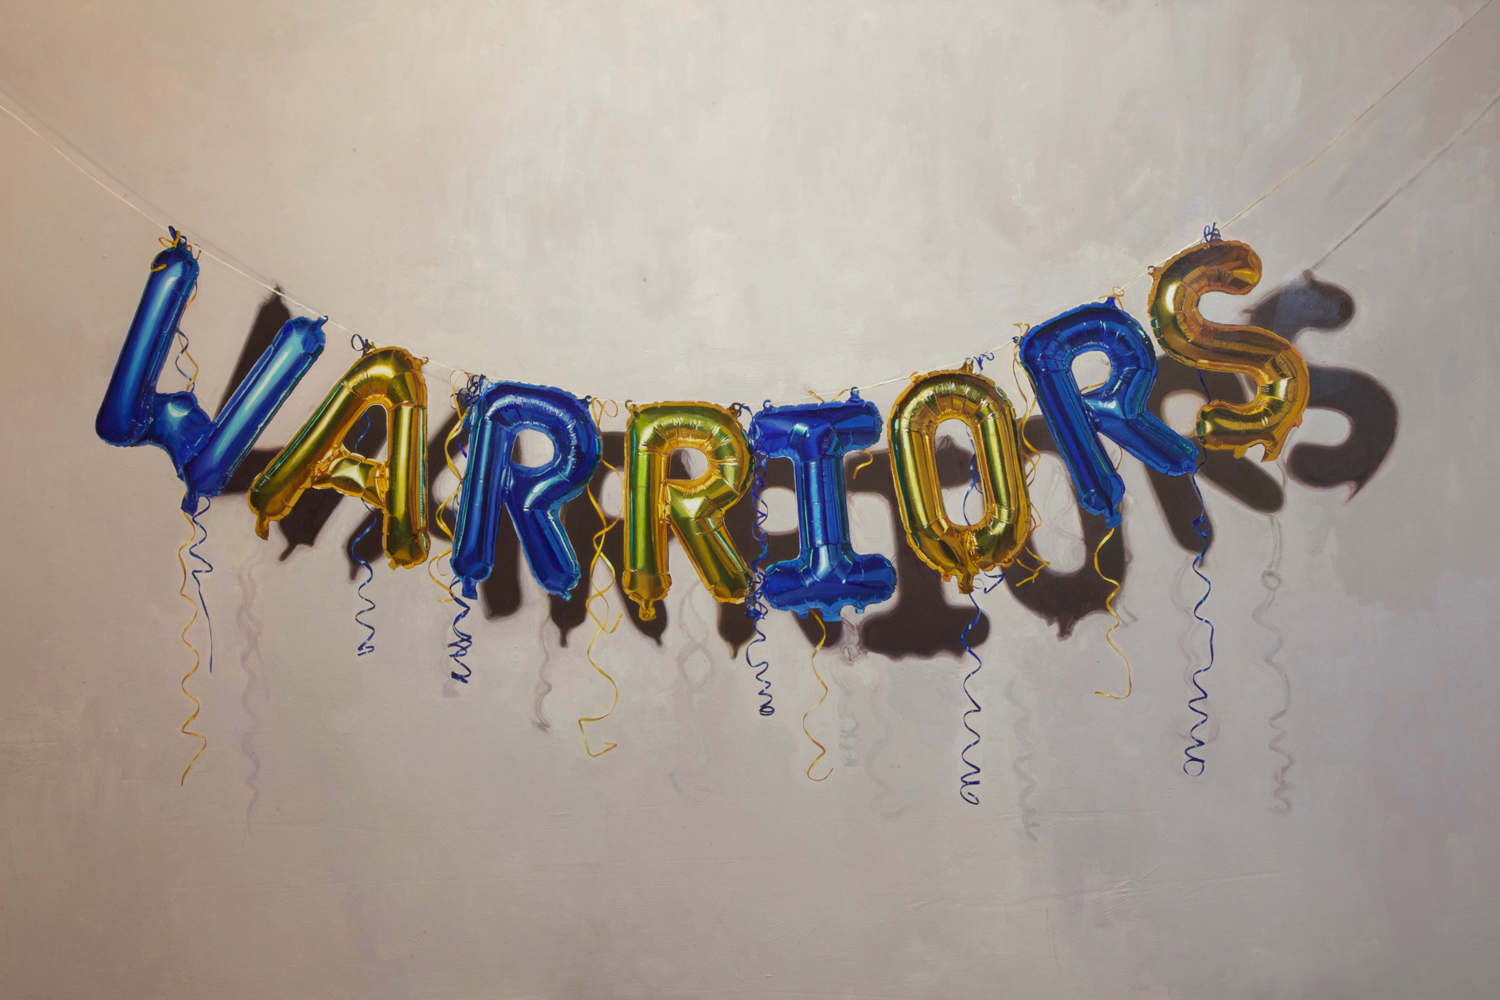 Go Warriors!